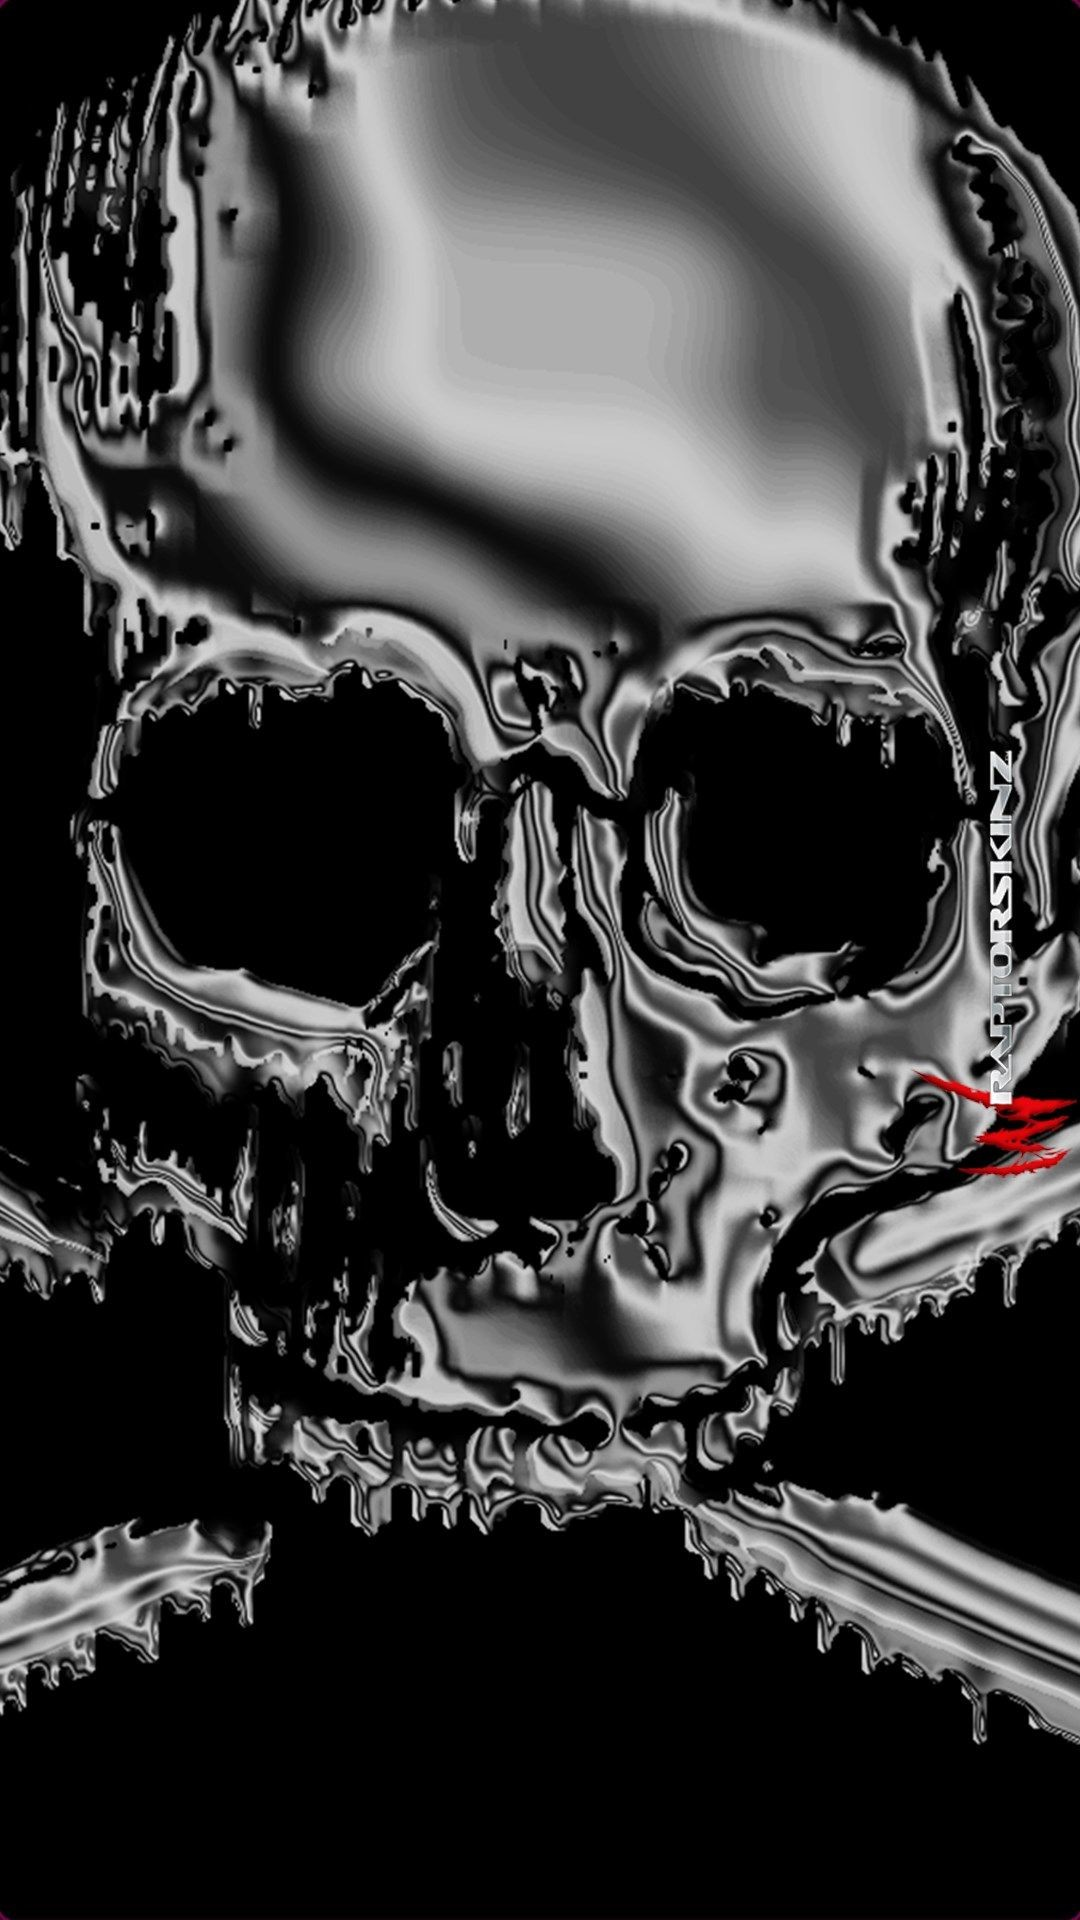 1080x1920 Skull wallpaper for cell phone - samsung copied apple pictures and  descriptions